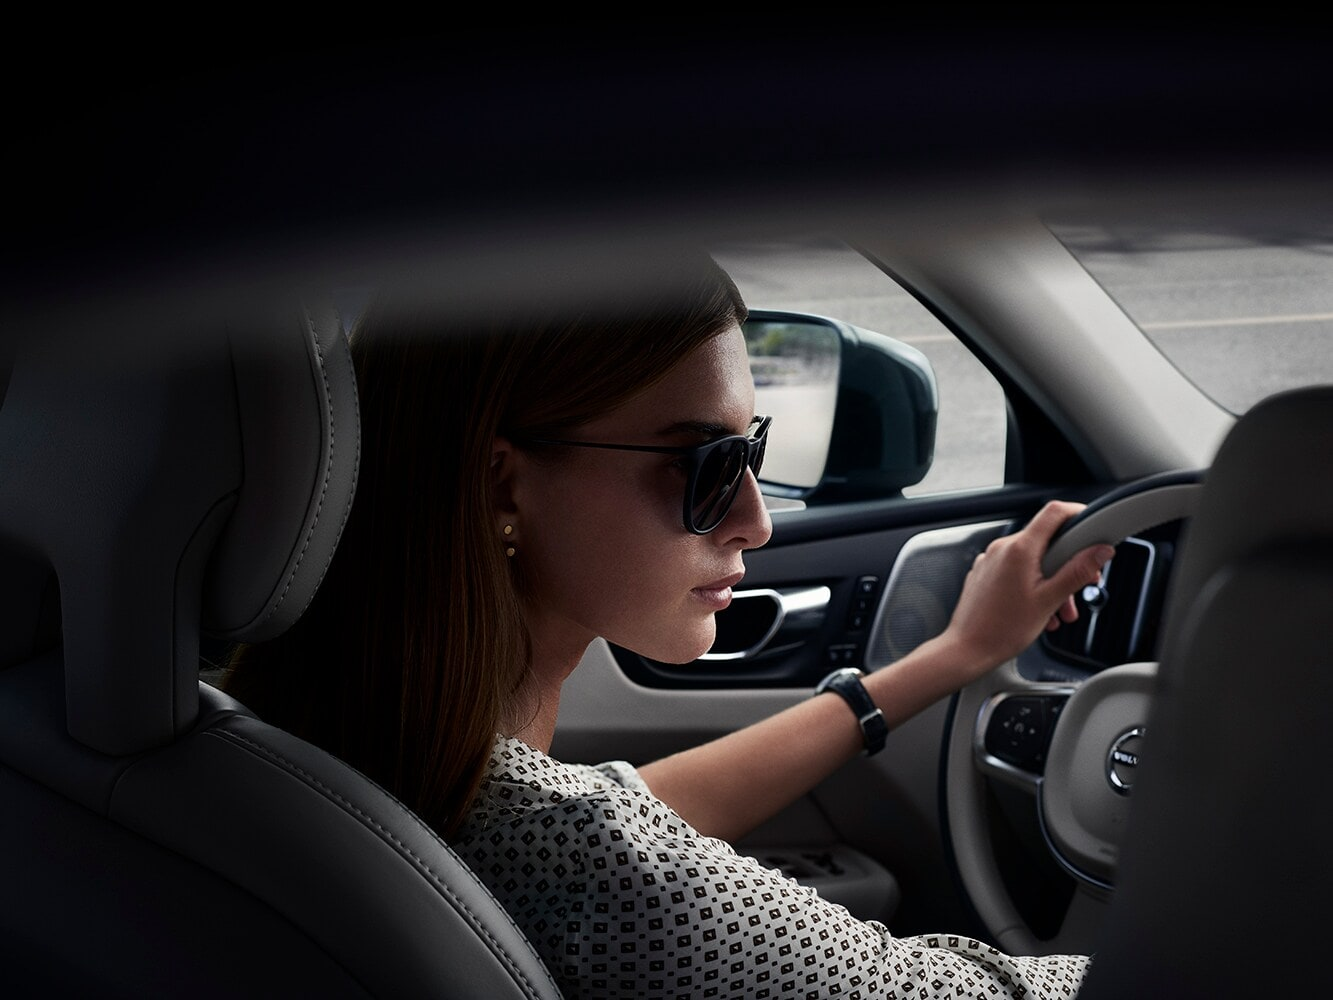 A woman takes the new Volvo XC60 for a test drive